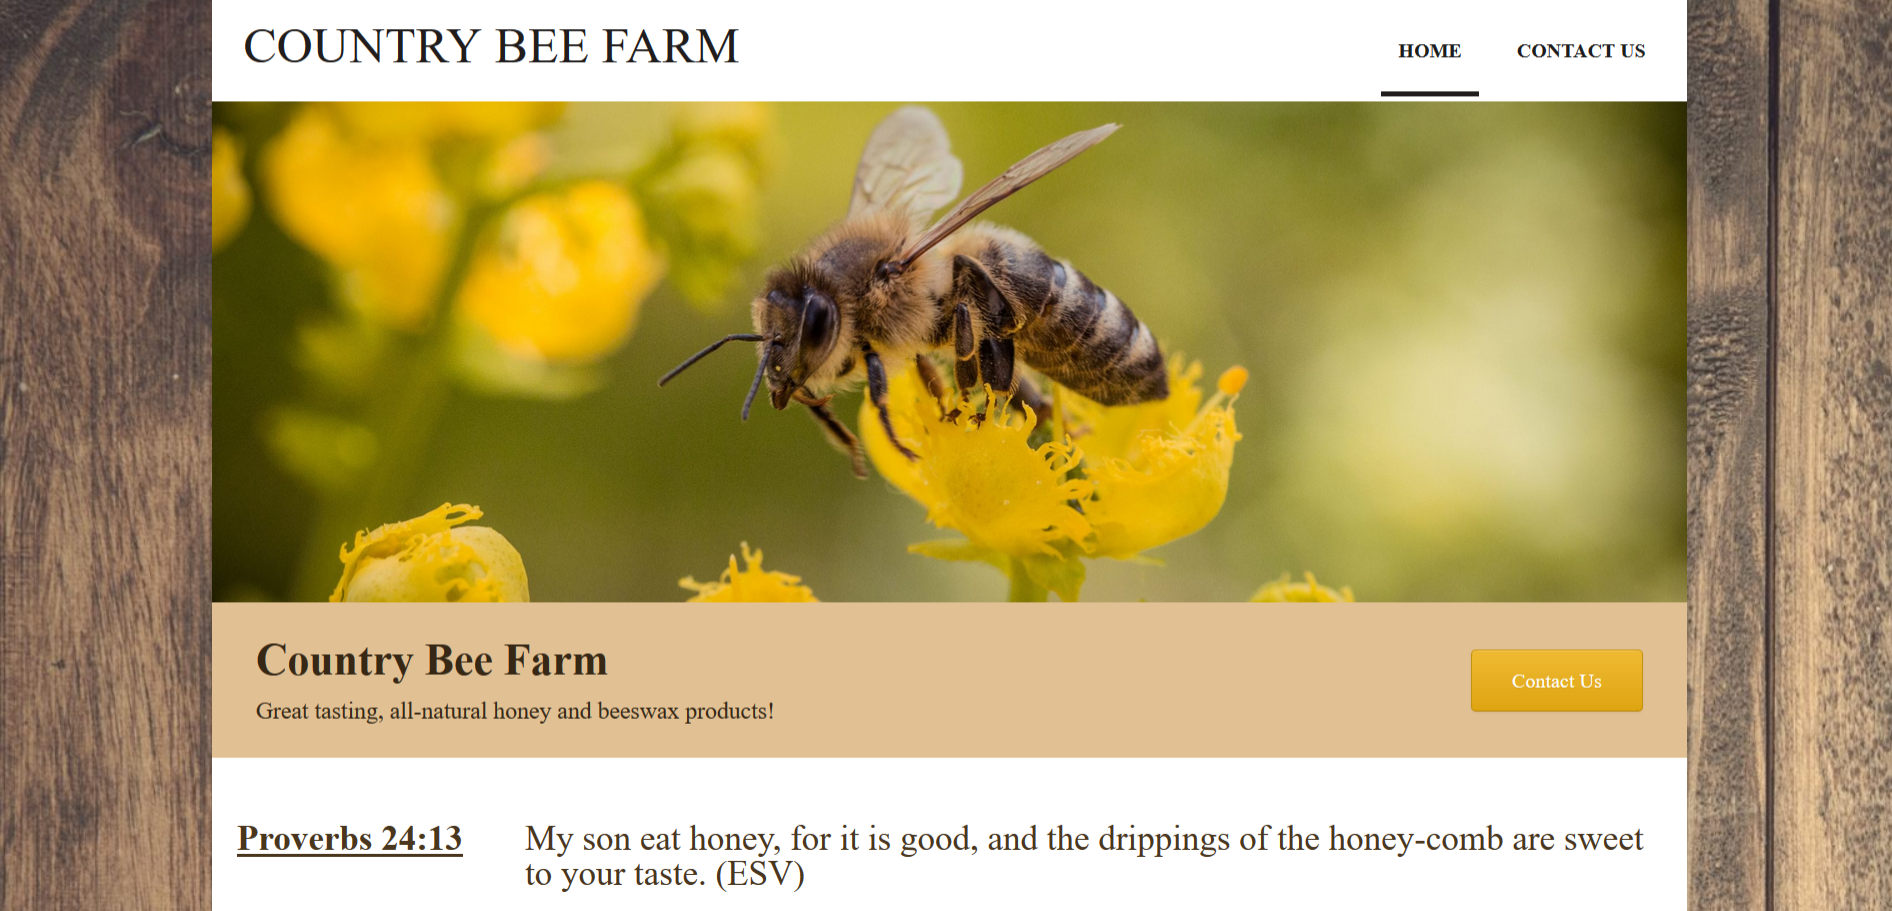 Country Bee Farm Website